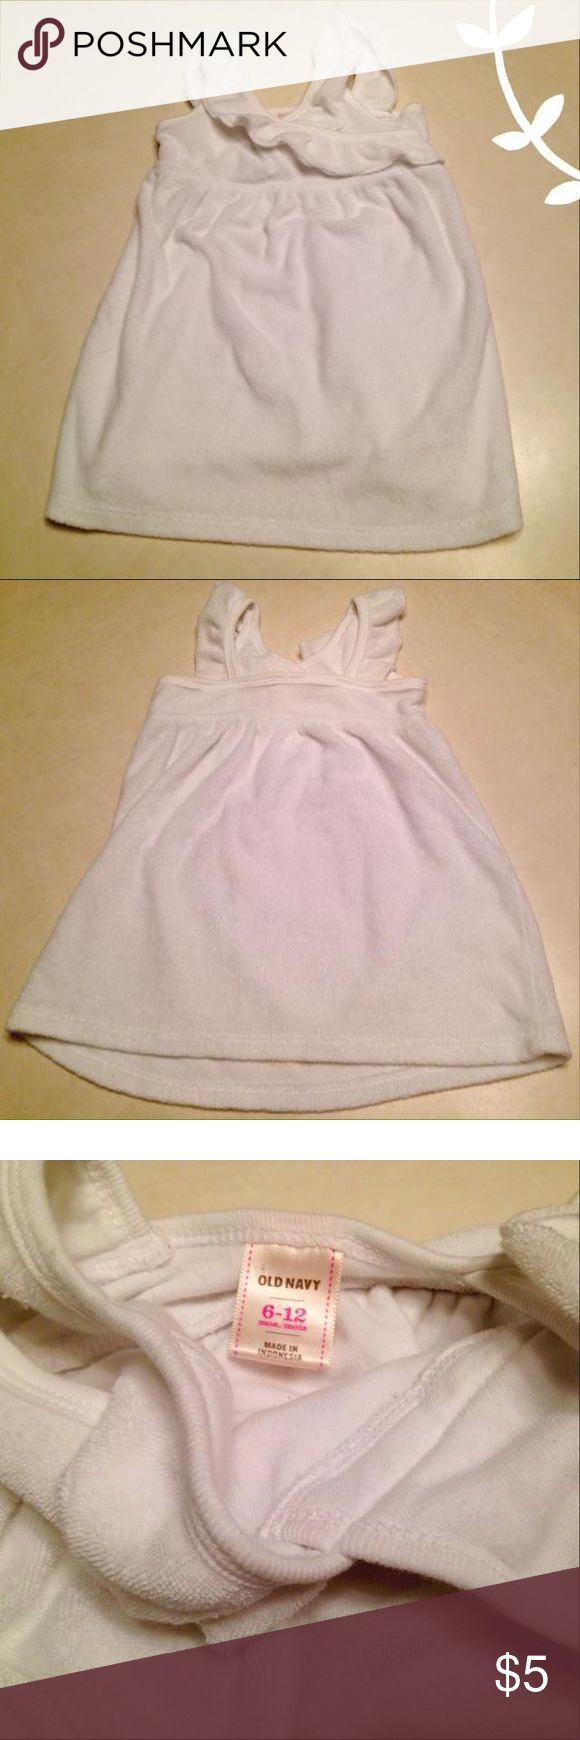 Old Navy swimsuit cover White terry cloth Old Navy swimsuit cover size 6-12 months Old Navy Dresses